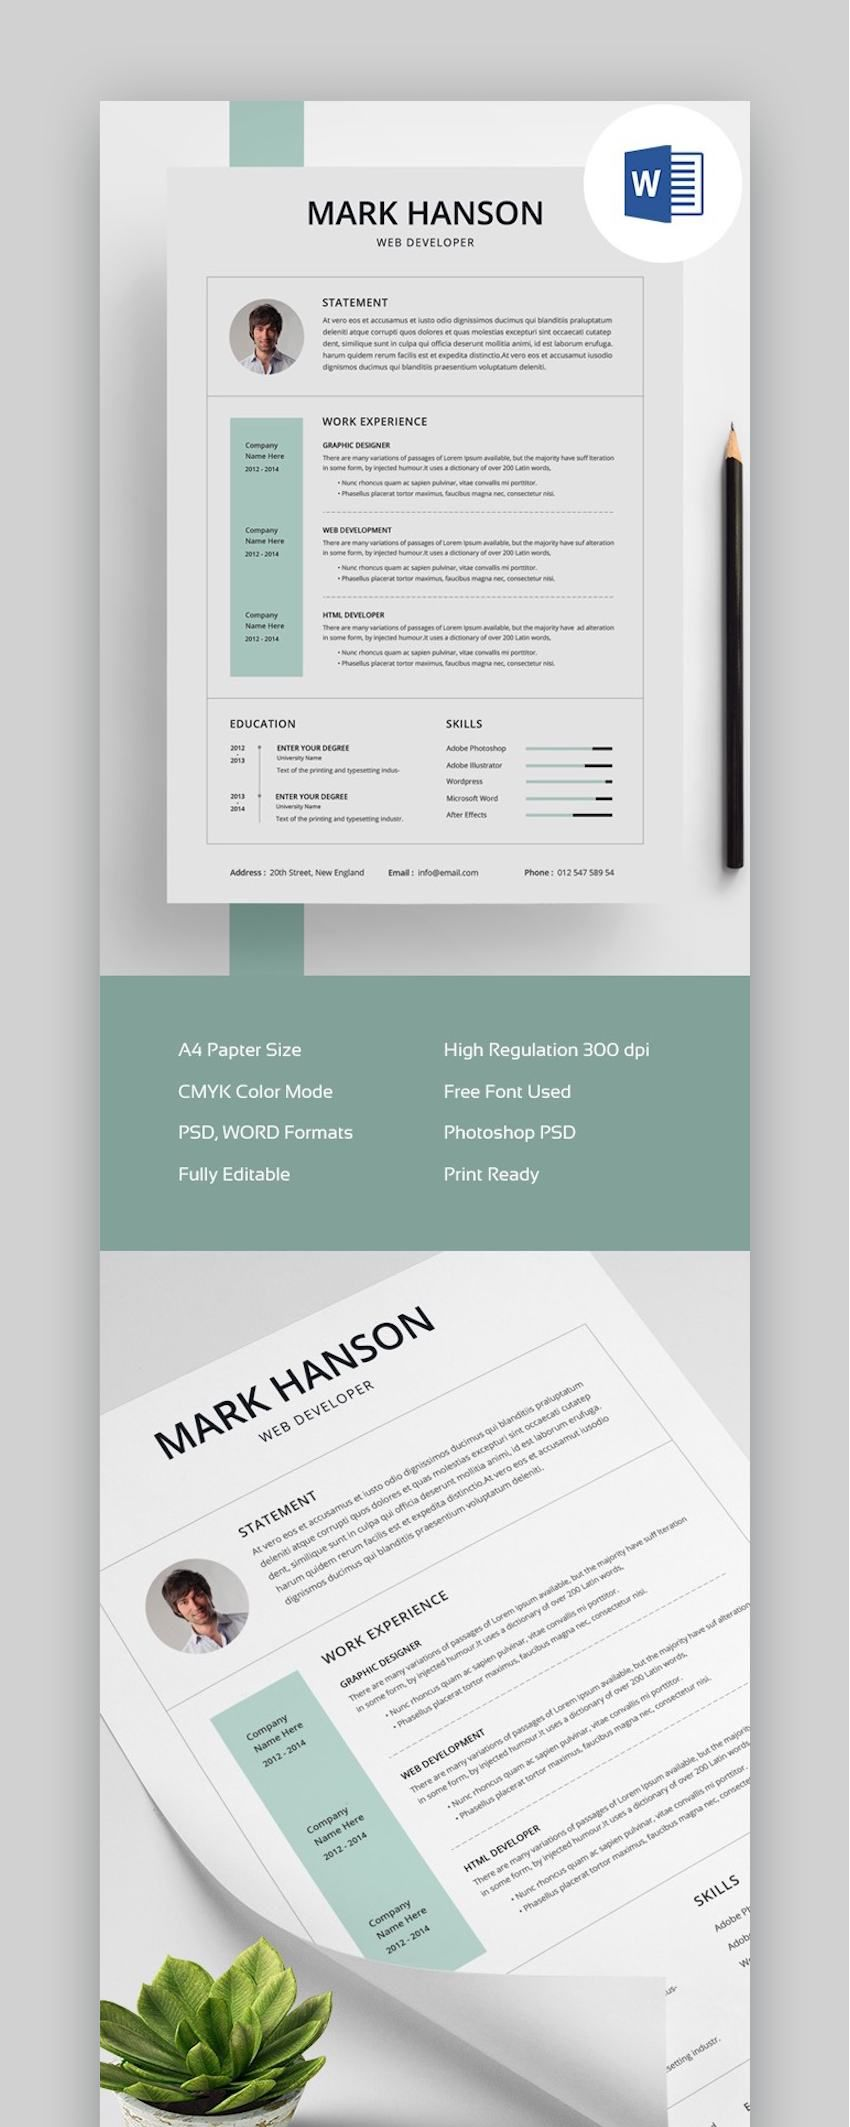 004 Remarkable Psd Cv Template Free Idea  2018 Vector Photo And File Download ArchitectFull